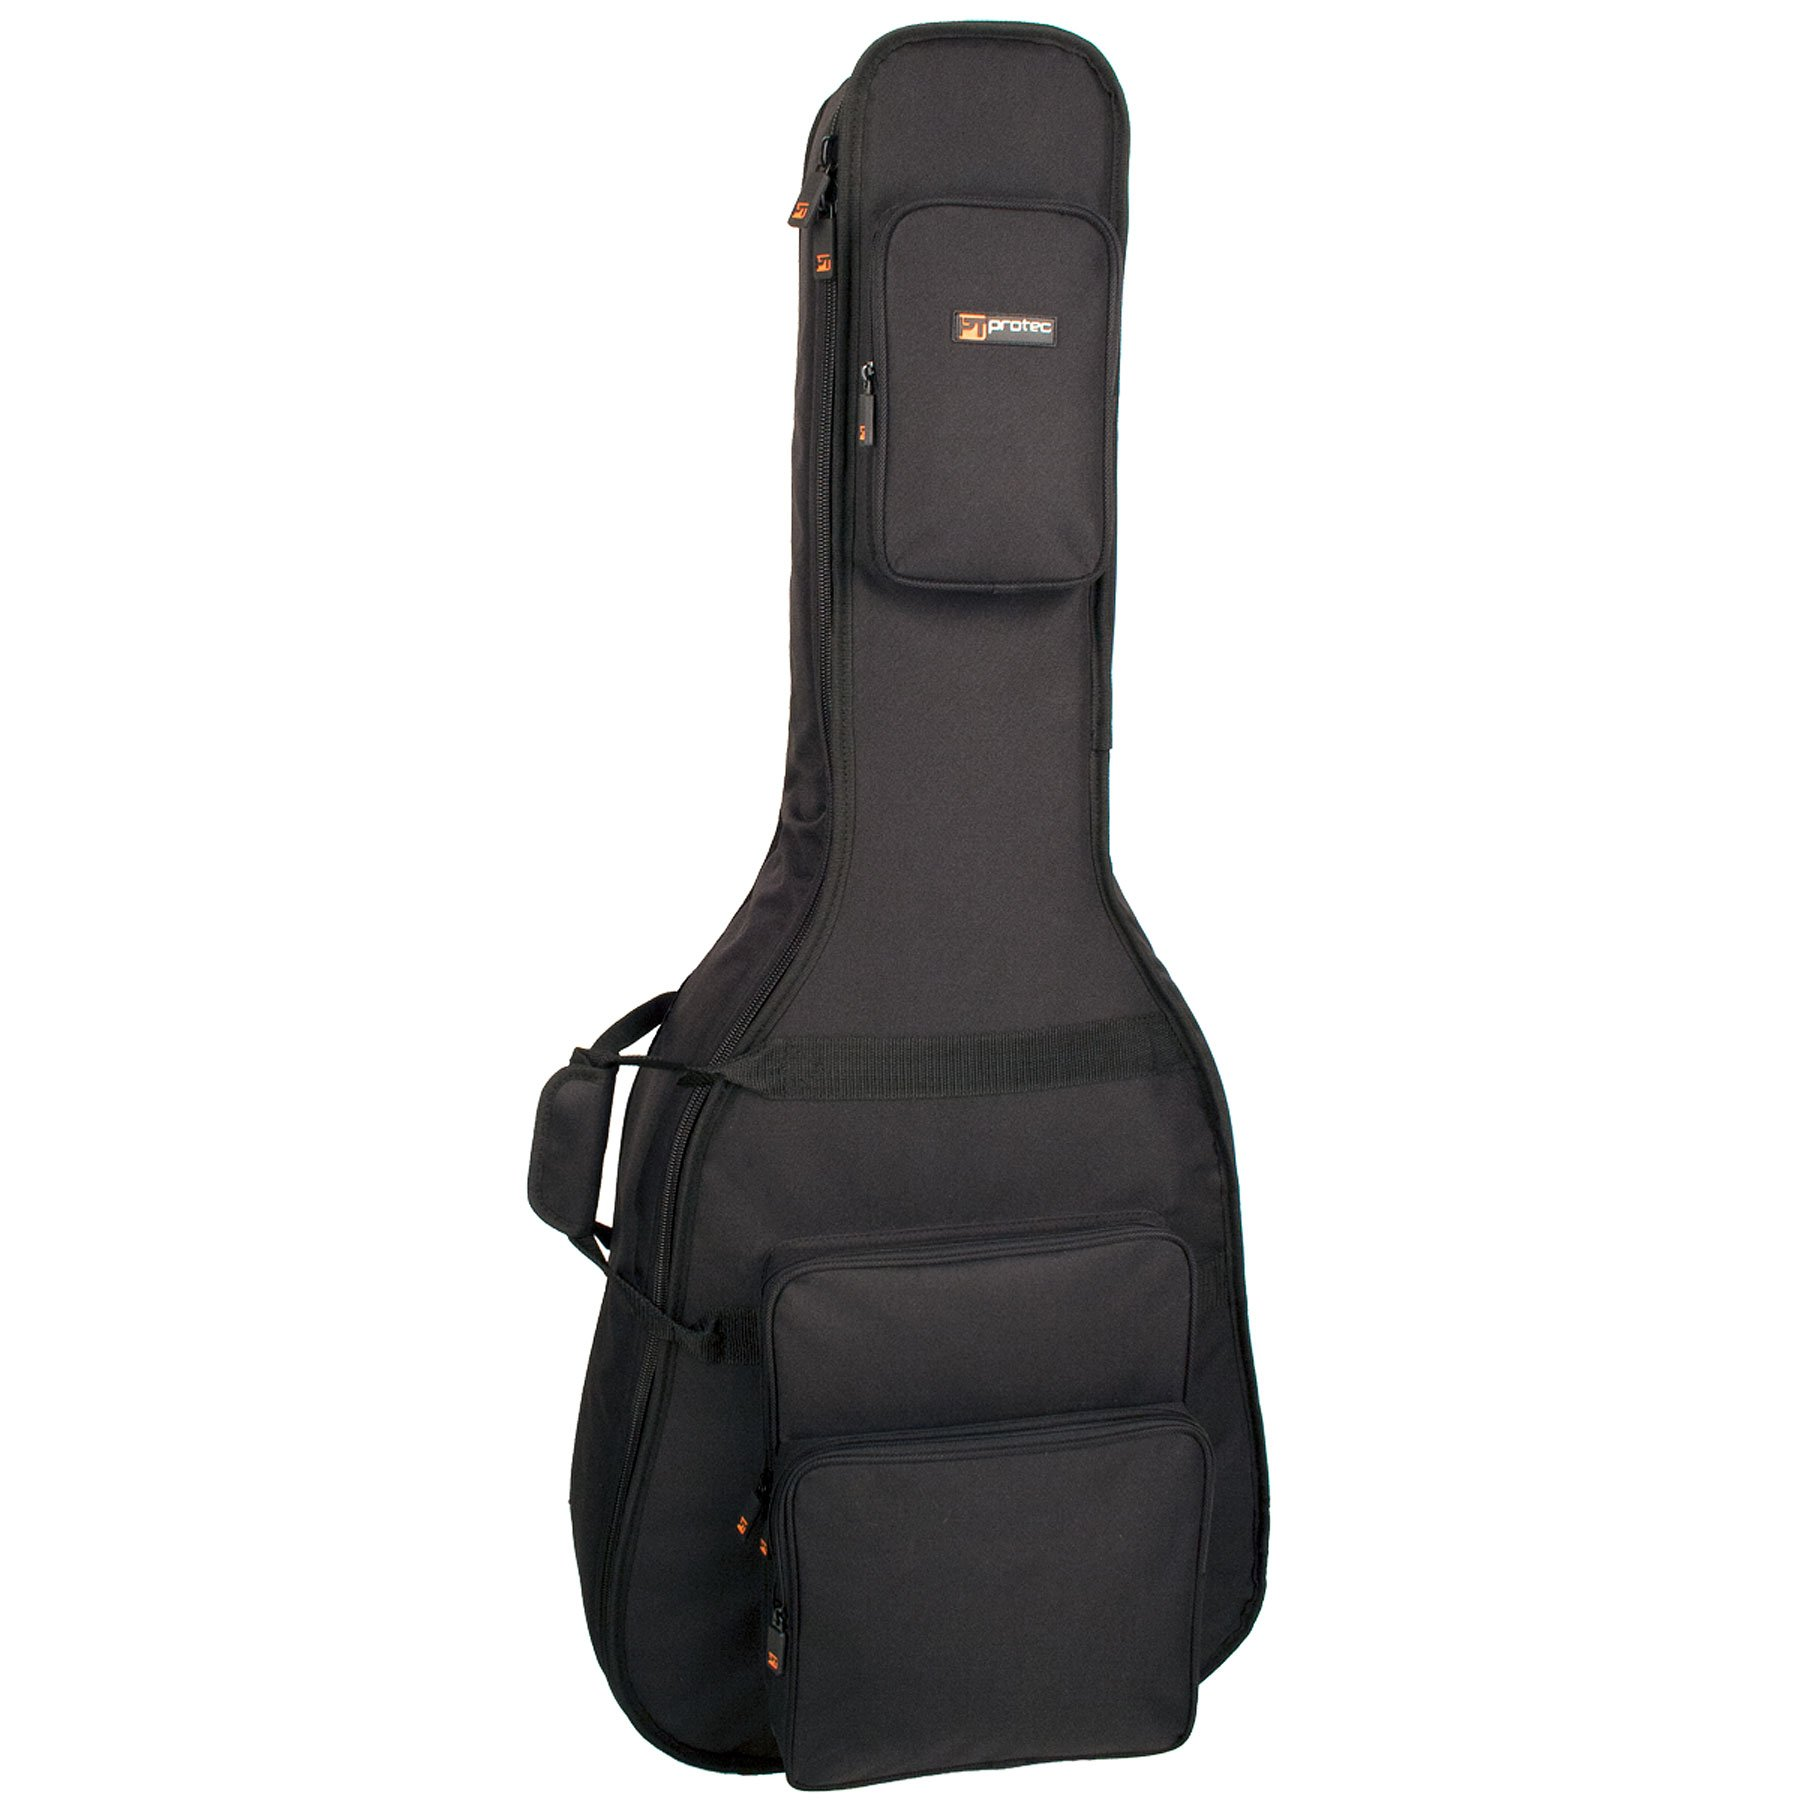 ff722b40c6 Best Rated in Acoustic Guitar Bags & Cases & Helpful Customer ...